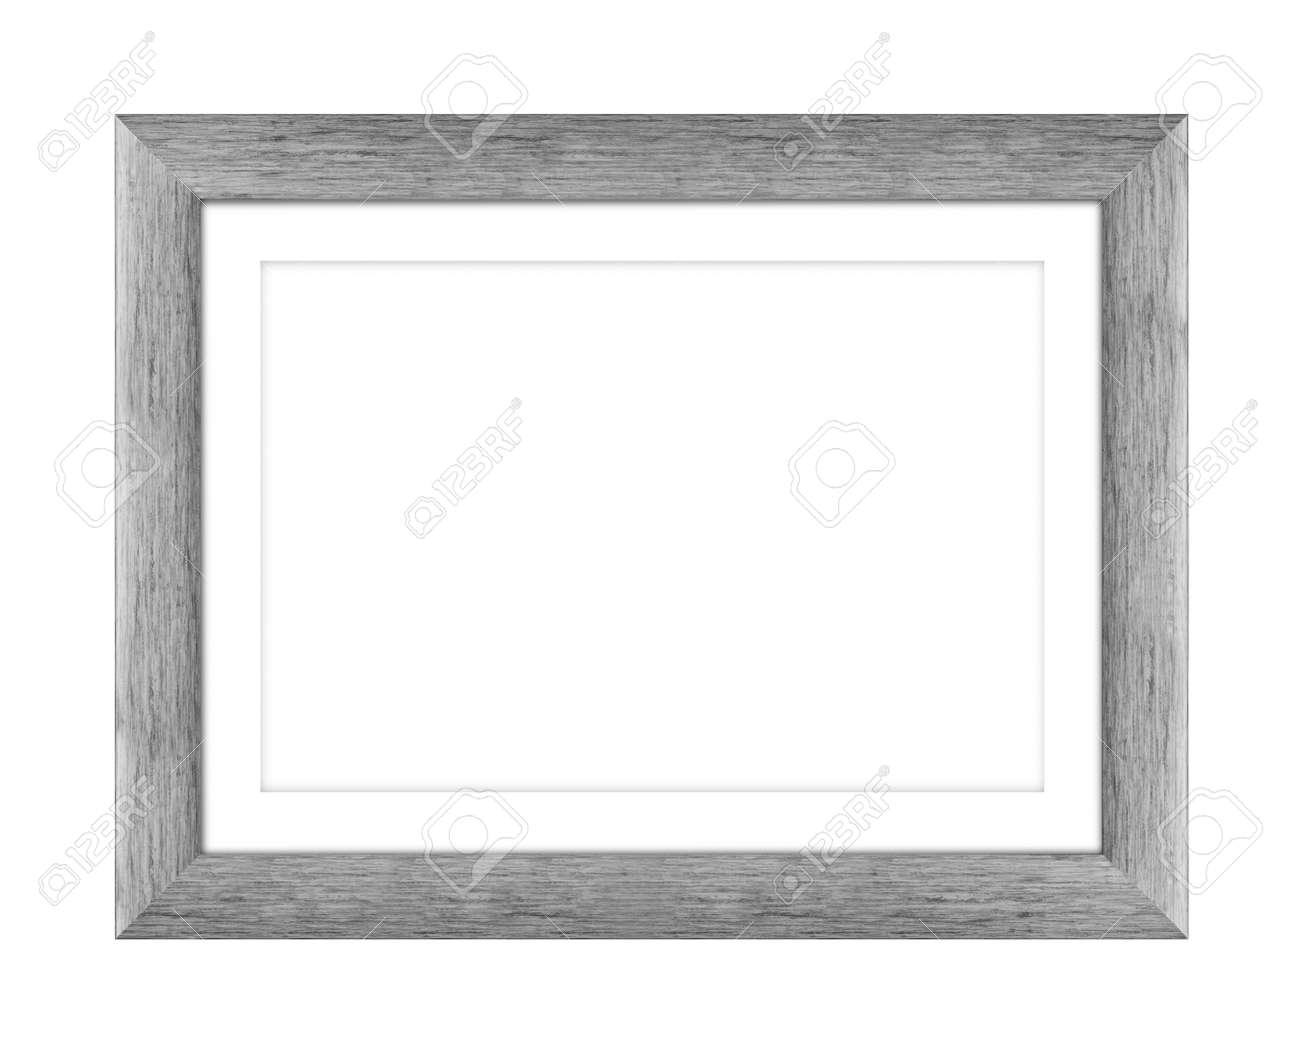 old gray wooden frame for picture or photo, frame for a mirror isolated on white background. With clipping path - 170242742